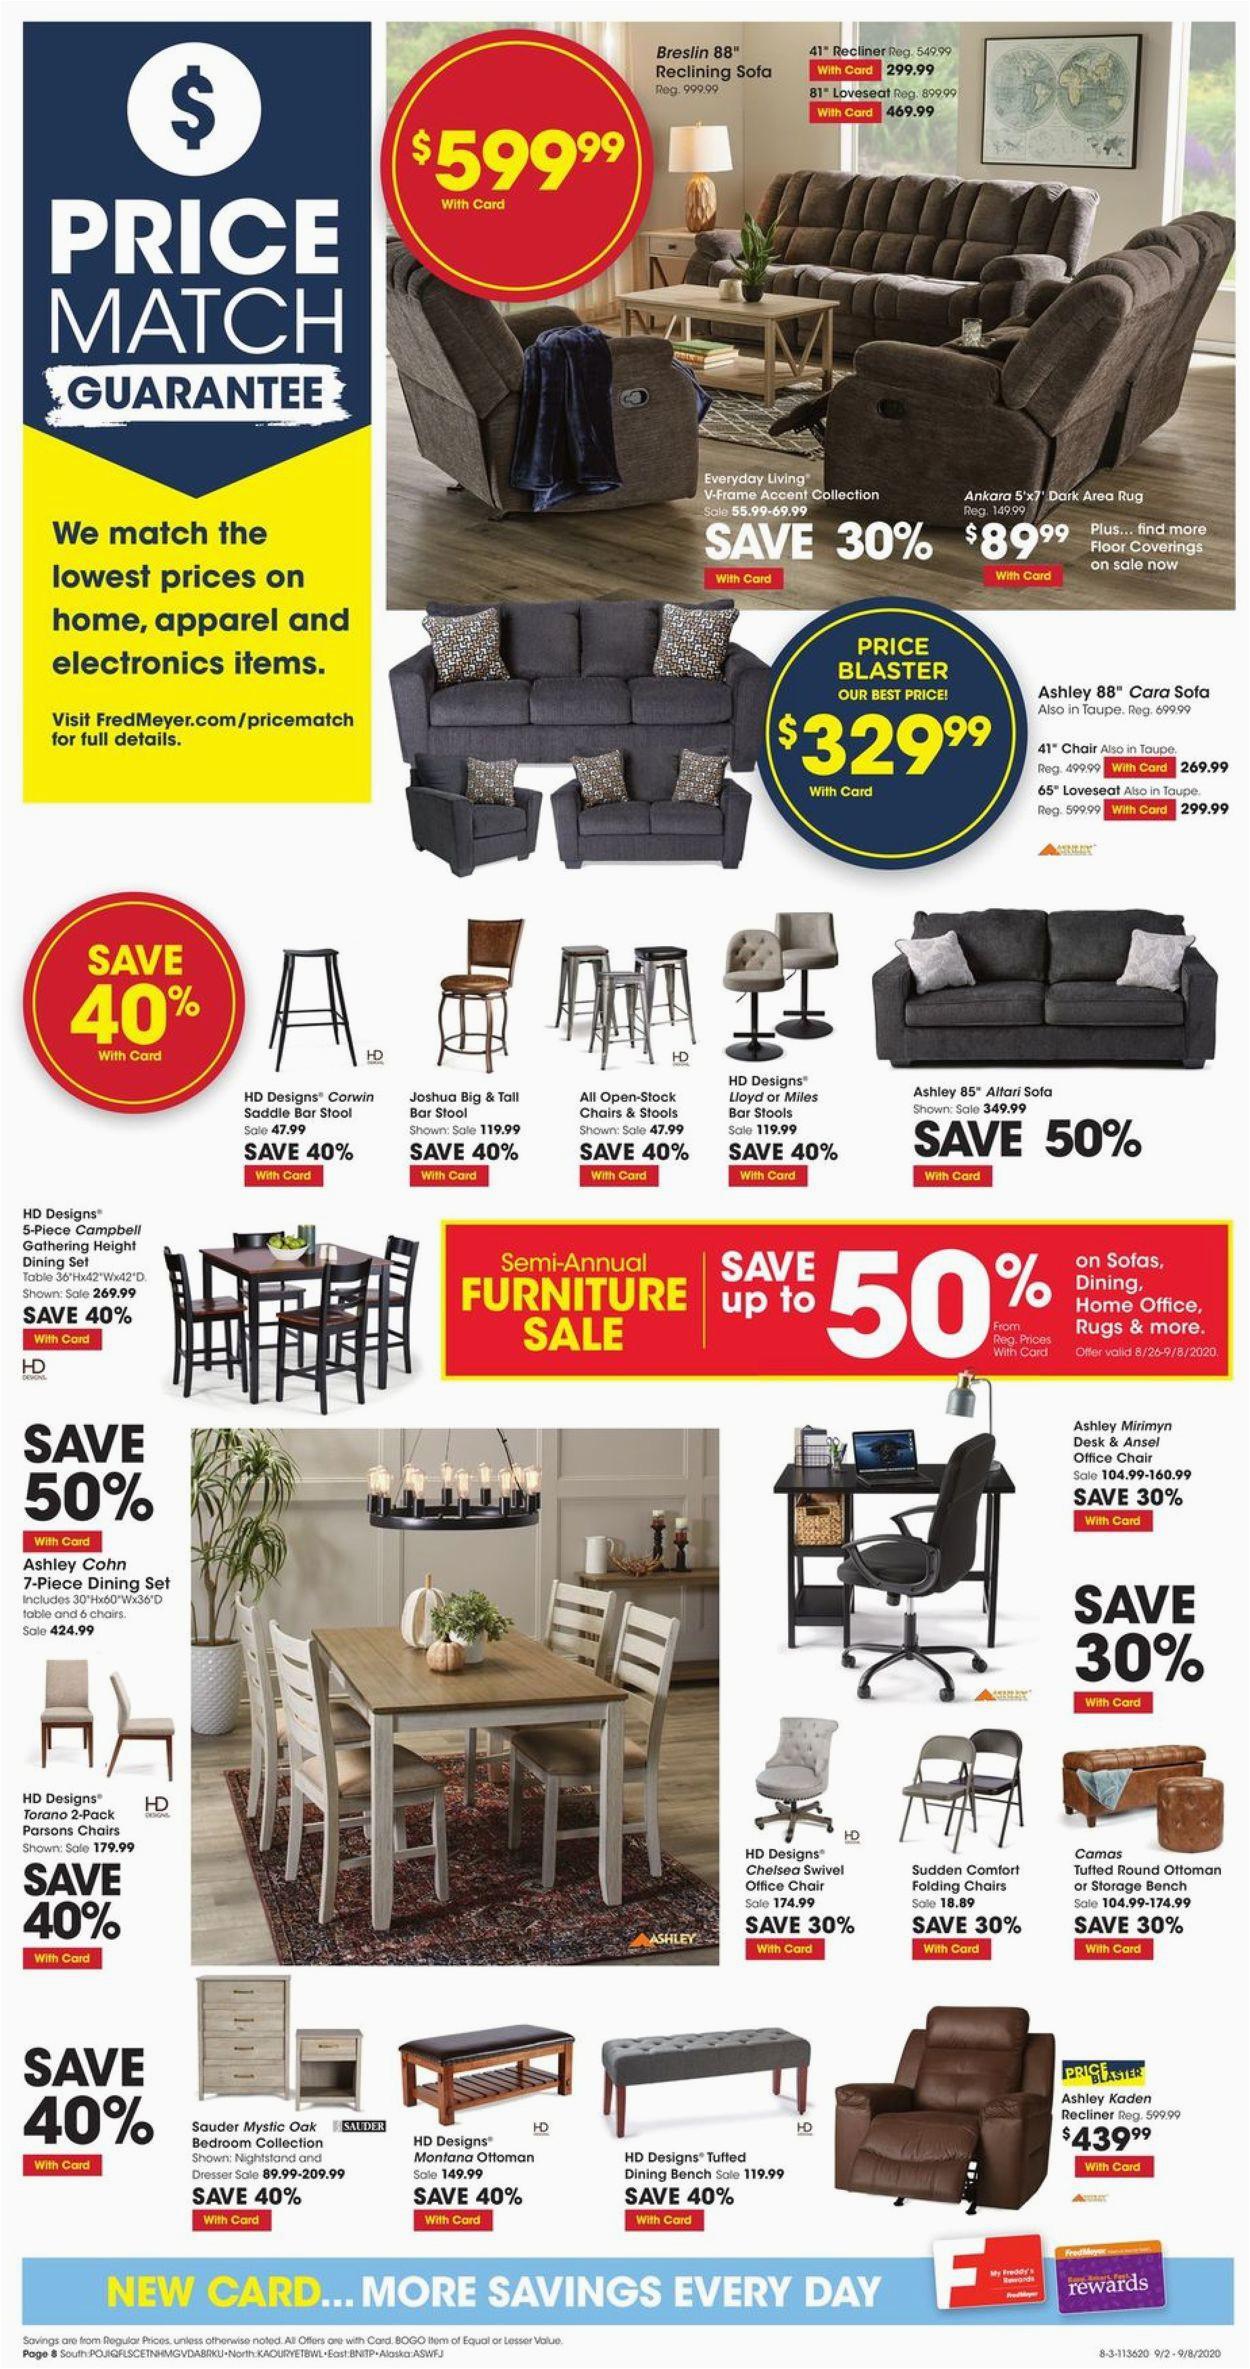 fred meyer weekly ad 784yLh5RR5 7